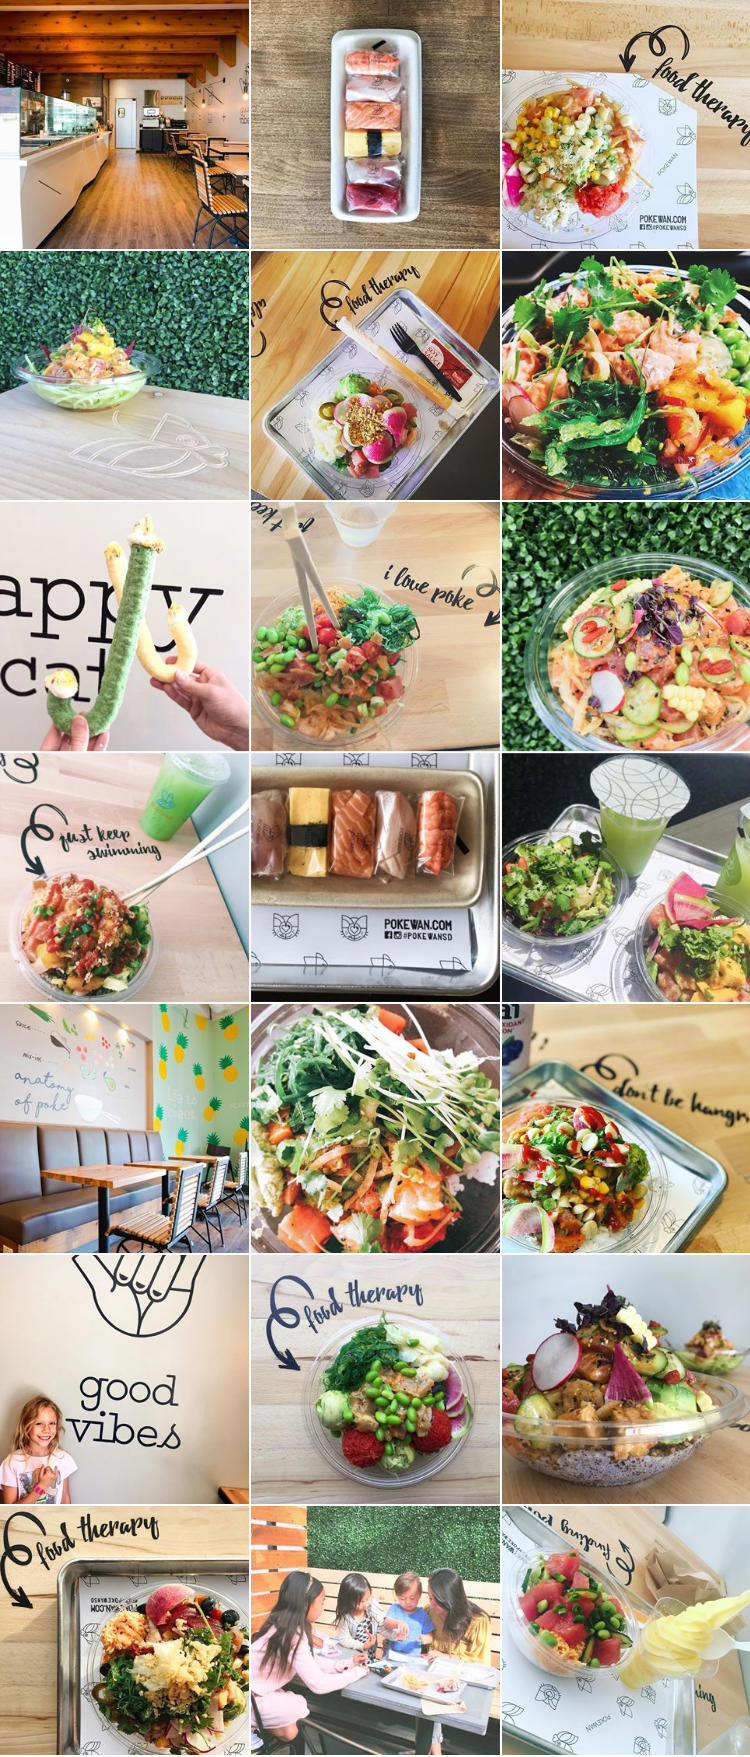 Pokewan  was launching a new location in Del Mar. We wanted to make sure their feed matched their locations and their vibe. I used a mix of photos I took along with user generated content to create a light and bright feed. I wanted to make sure that the images were visually balanced – you can see an even spread of people, flat lays, interior, bowls, Instagrammable decor, trays, sushi, etc.